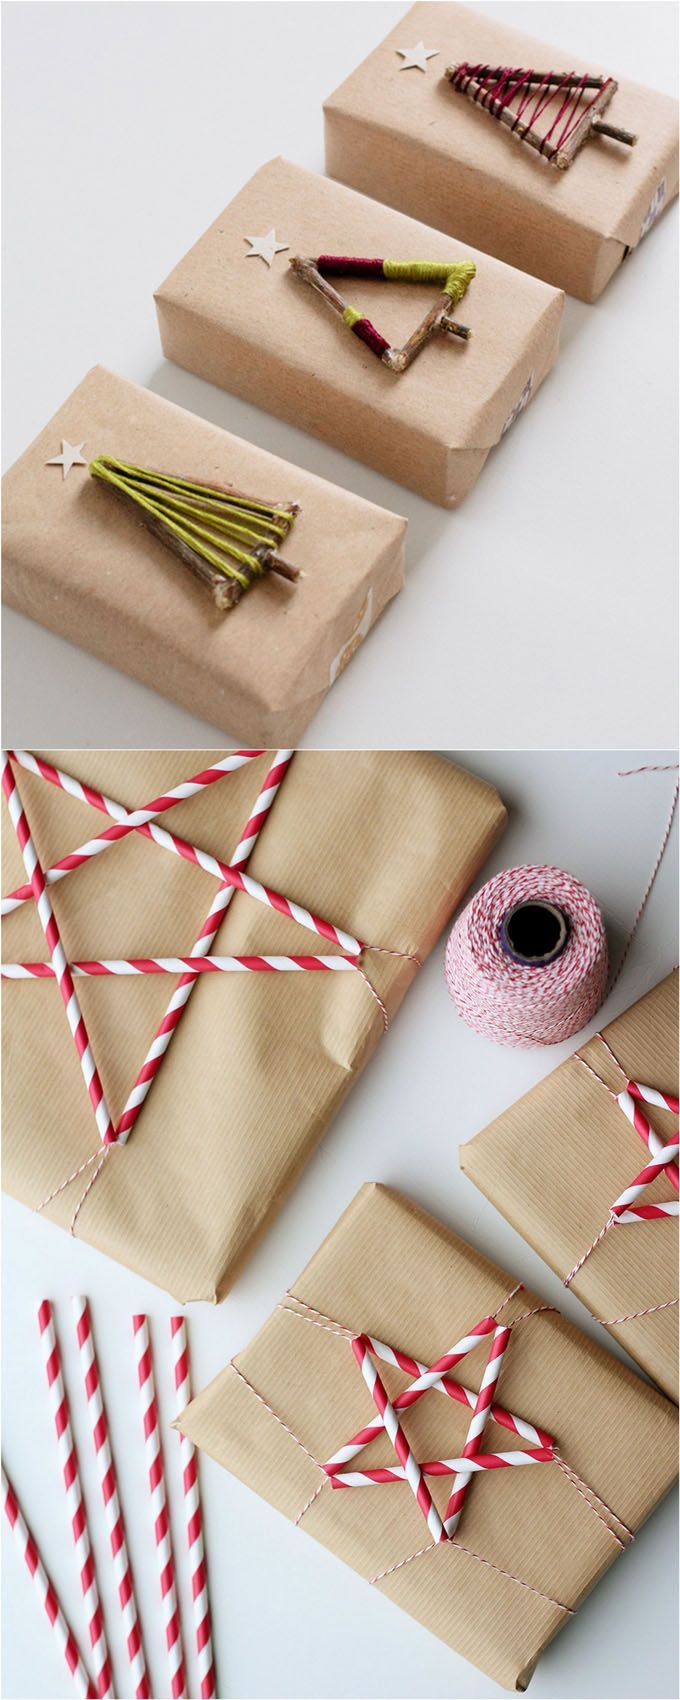 Best 25+ Paper gifts ideas on Pinterest | Gift bows, Paper hearts ...